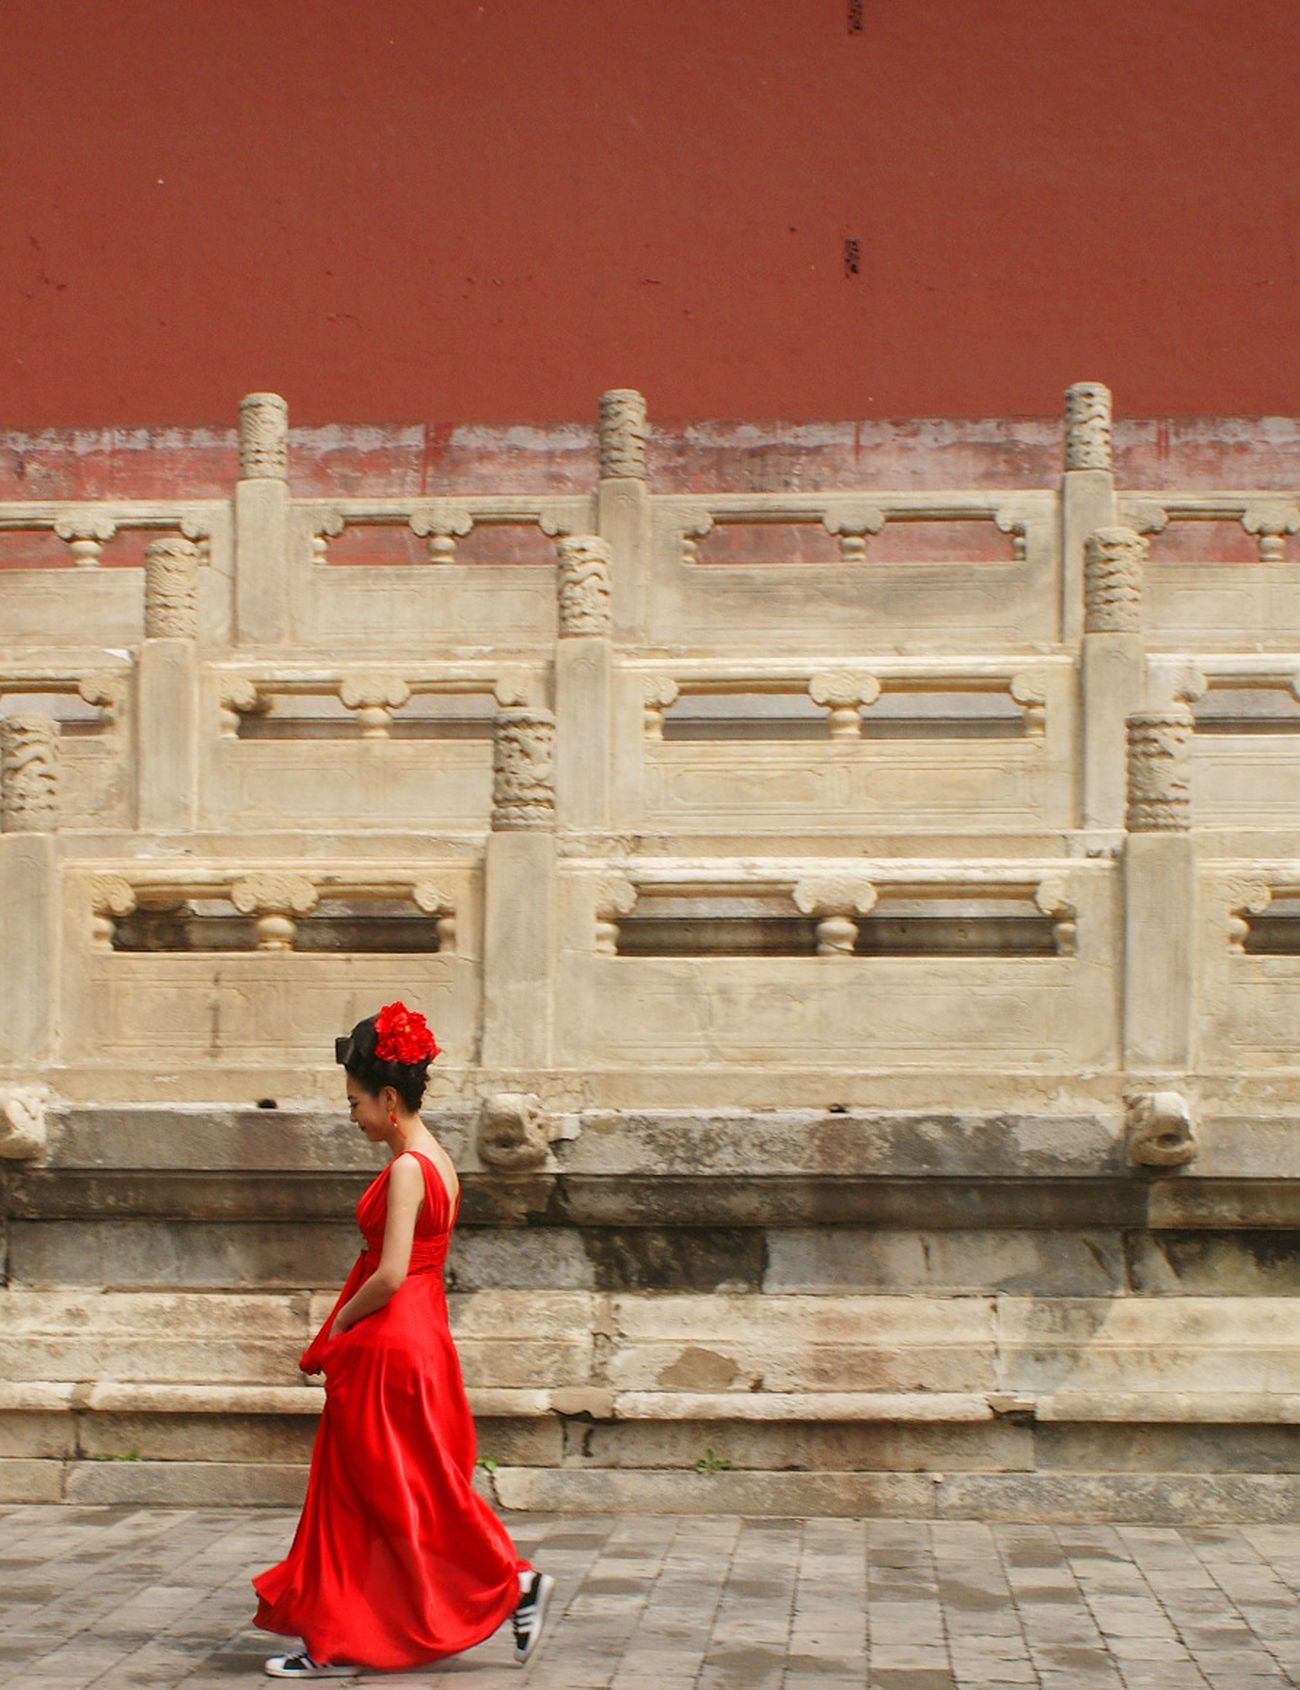 Red Architecture Building Exterior One Person Real People Red Tourism Traditional Clothing Women